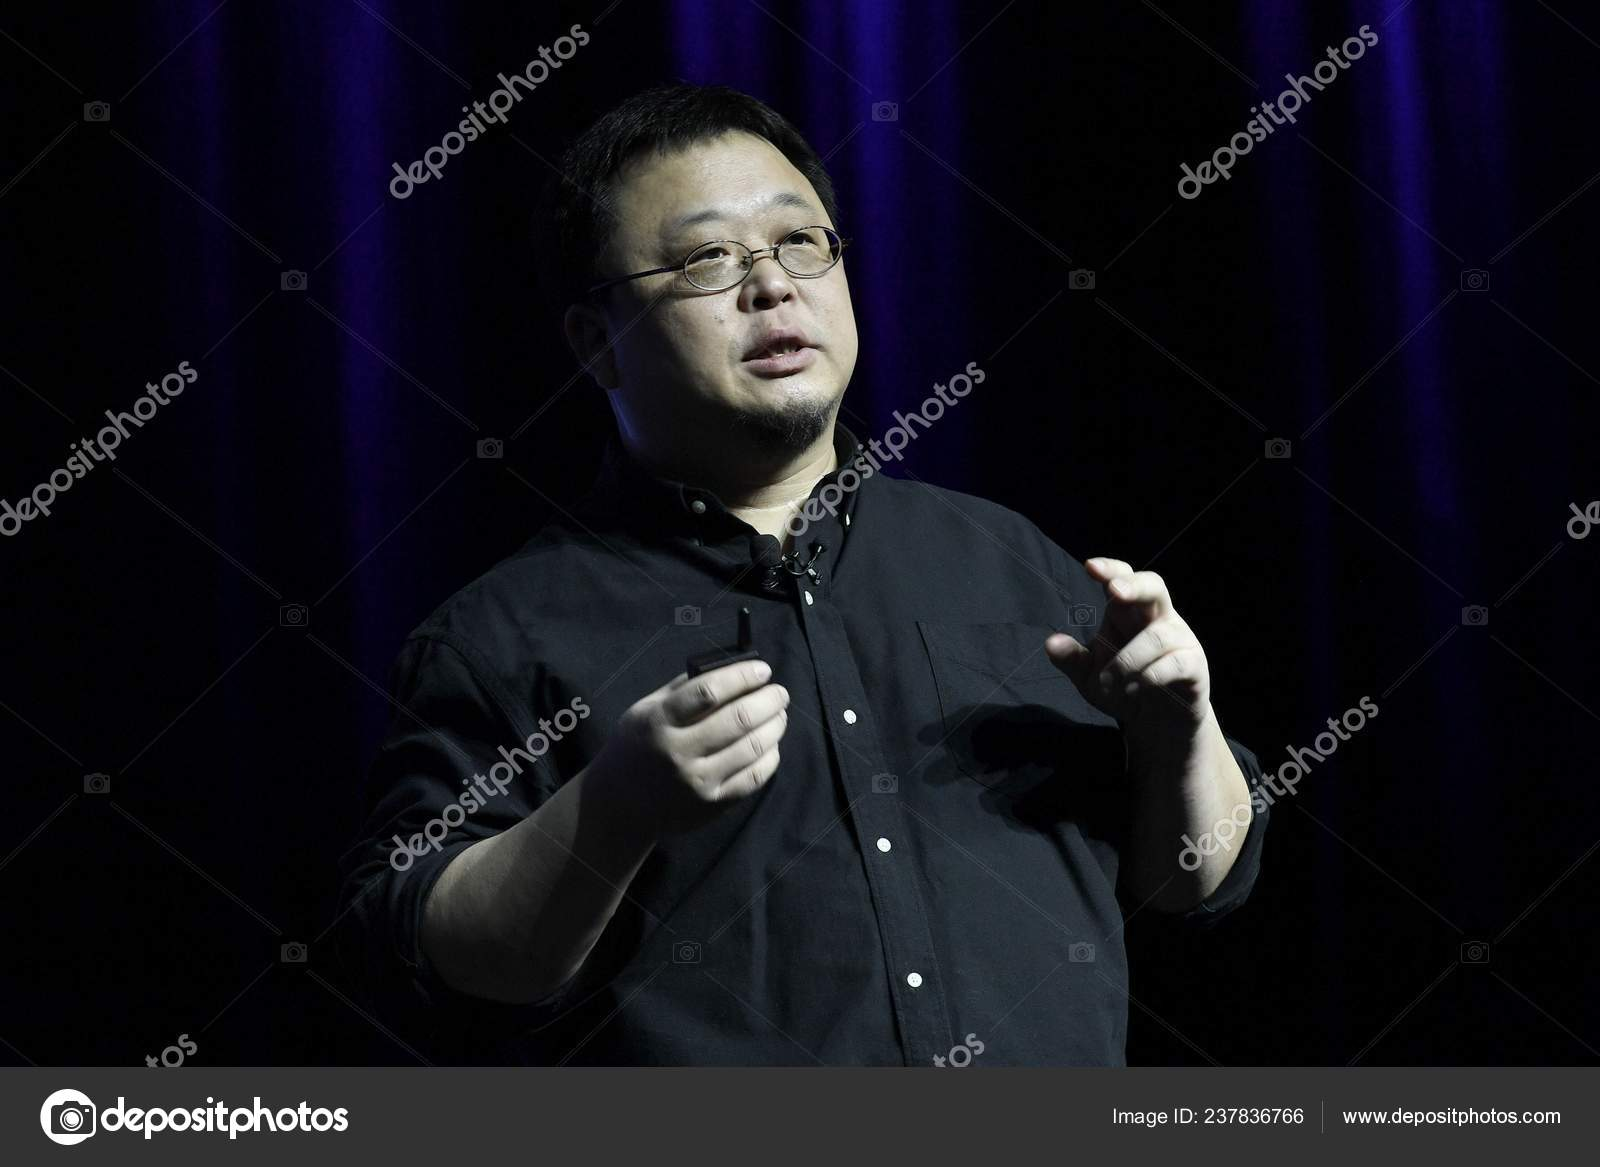 Luo Yonghao Founder Ceo Smartisan Technology Ltd Founder Now